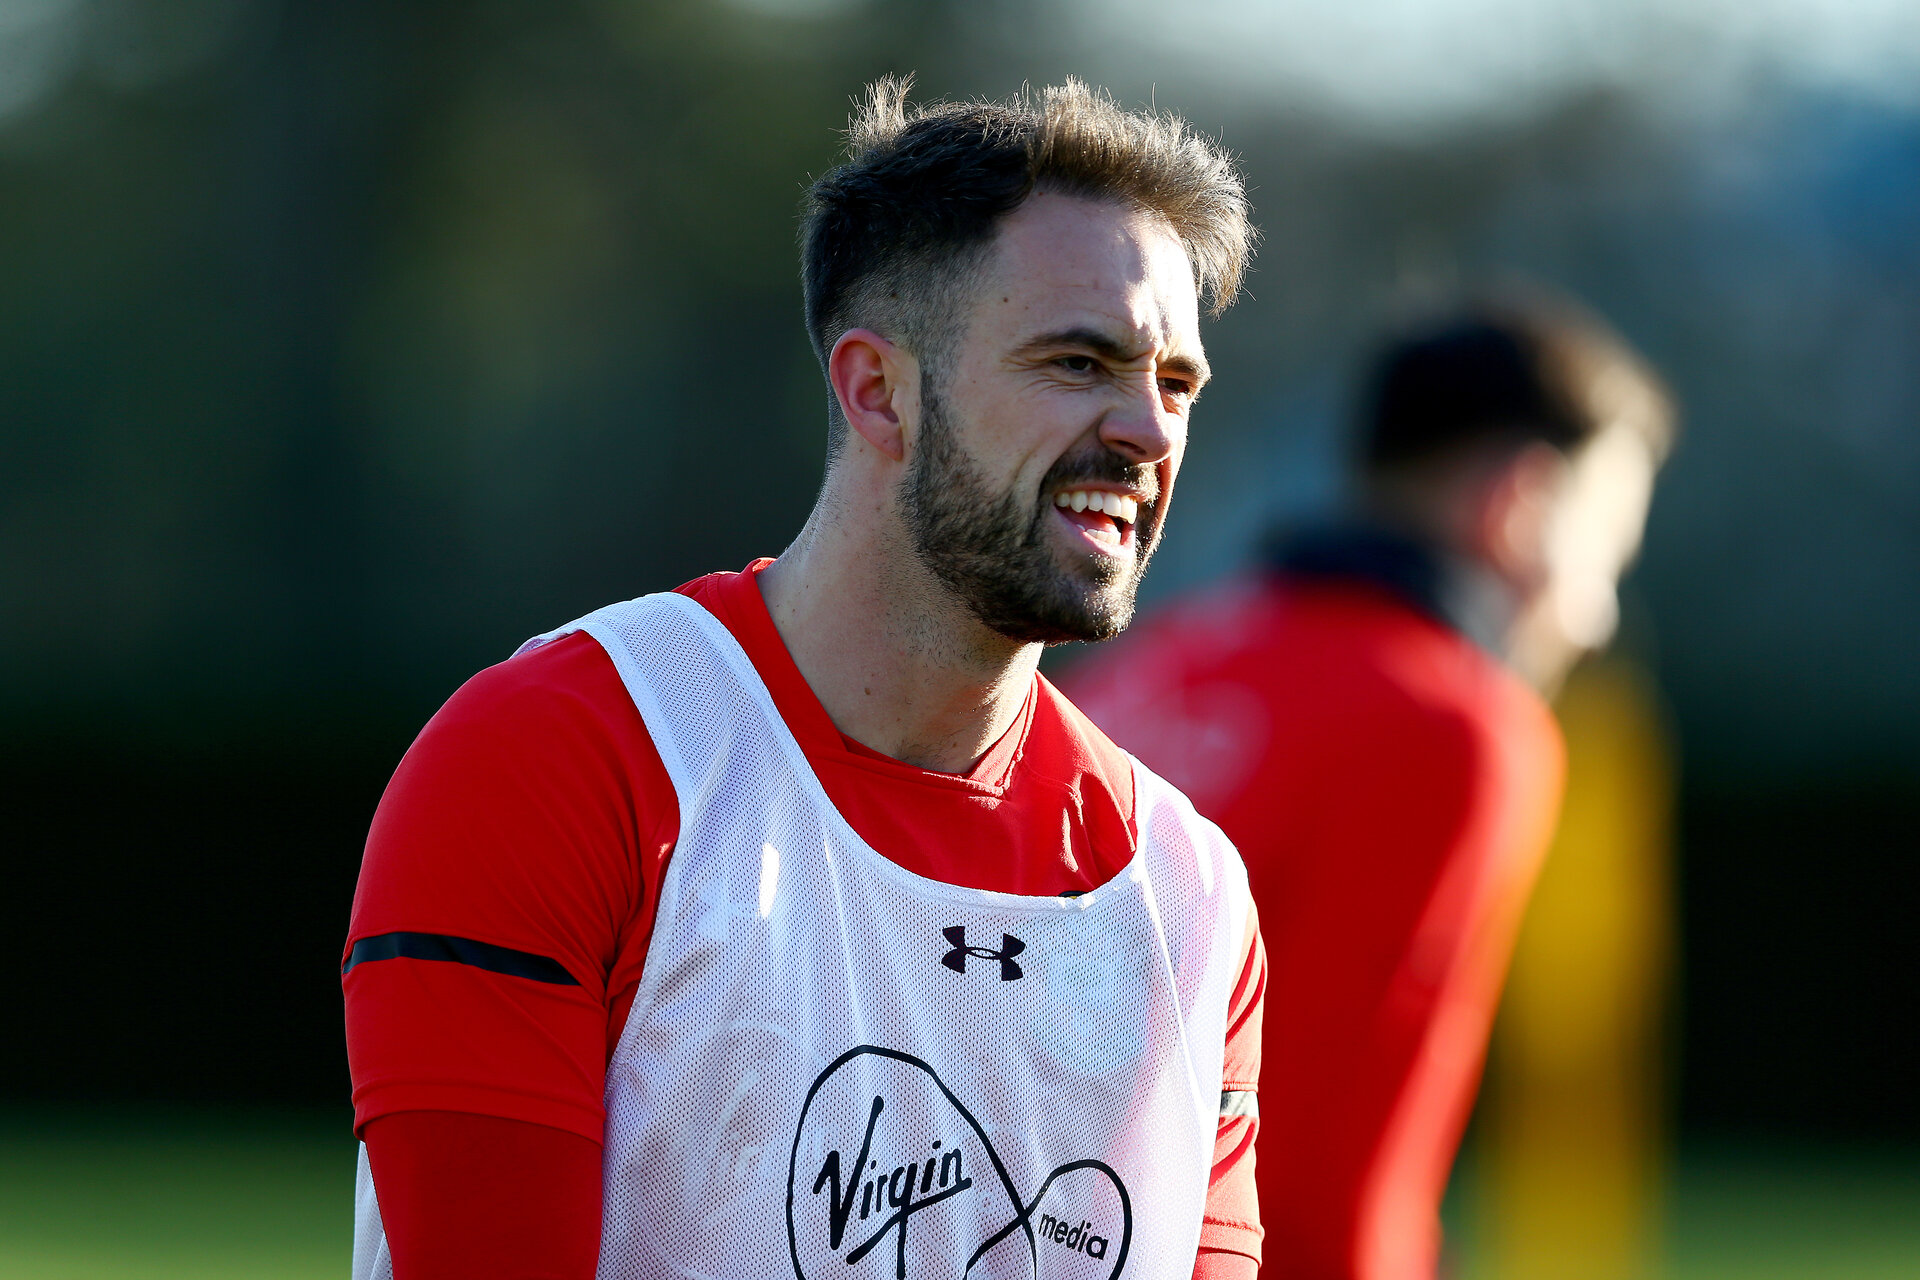 SOUTHAMPTON, ENGLAND - JANUARY 17: Danny Ings during a Southampton FC training session at the Staplewood Campus on January 17, 2019 in Southampton, England. (Photo by Matt Watson/Southampton FC via Getty Images)